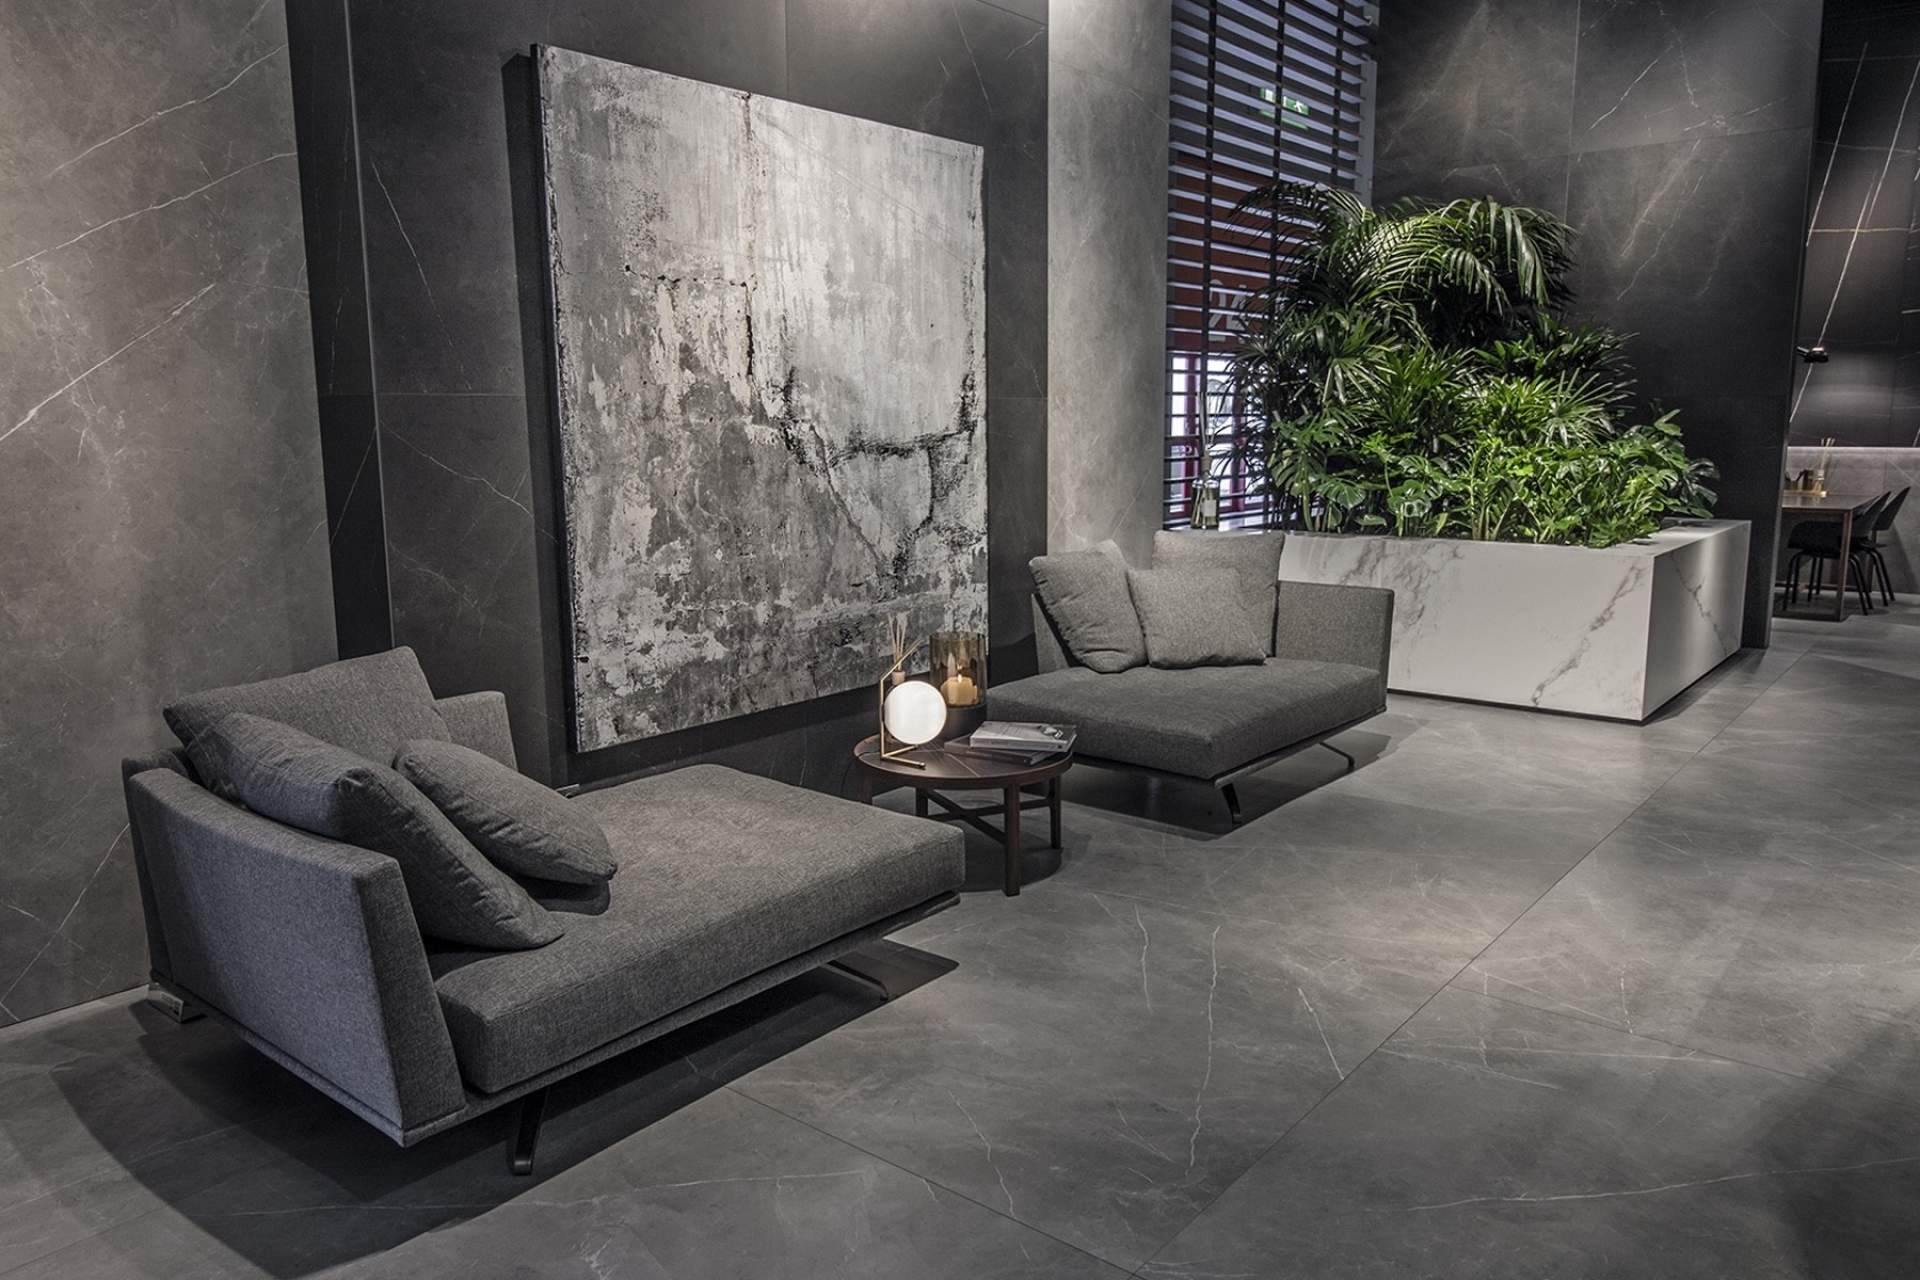 Inspire open plan setting using grey natural tile